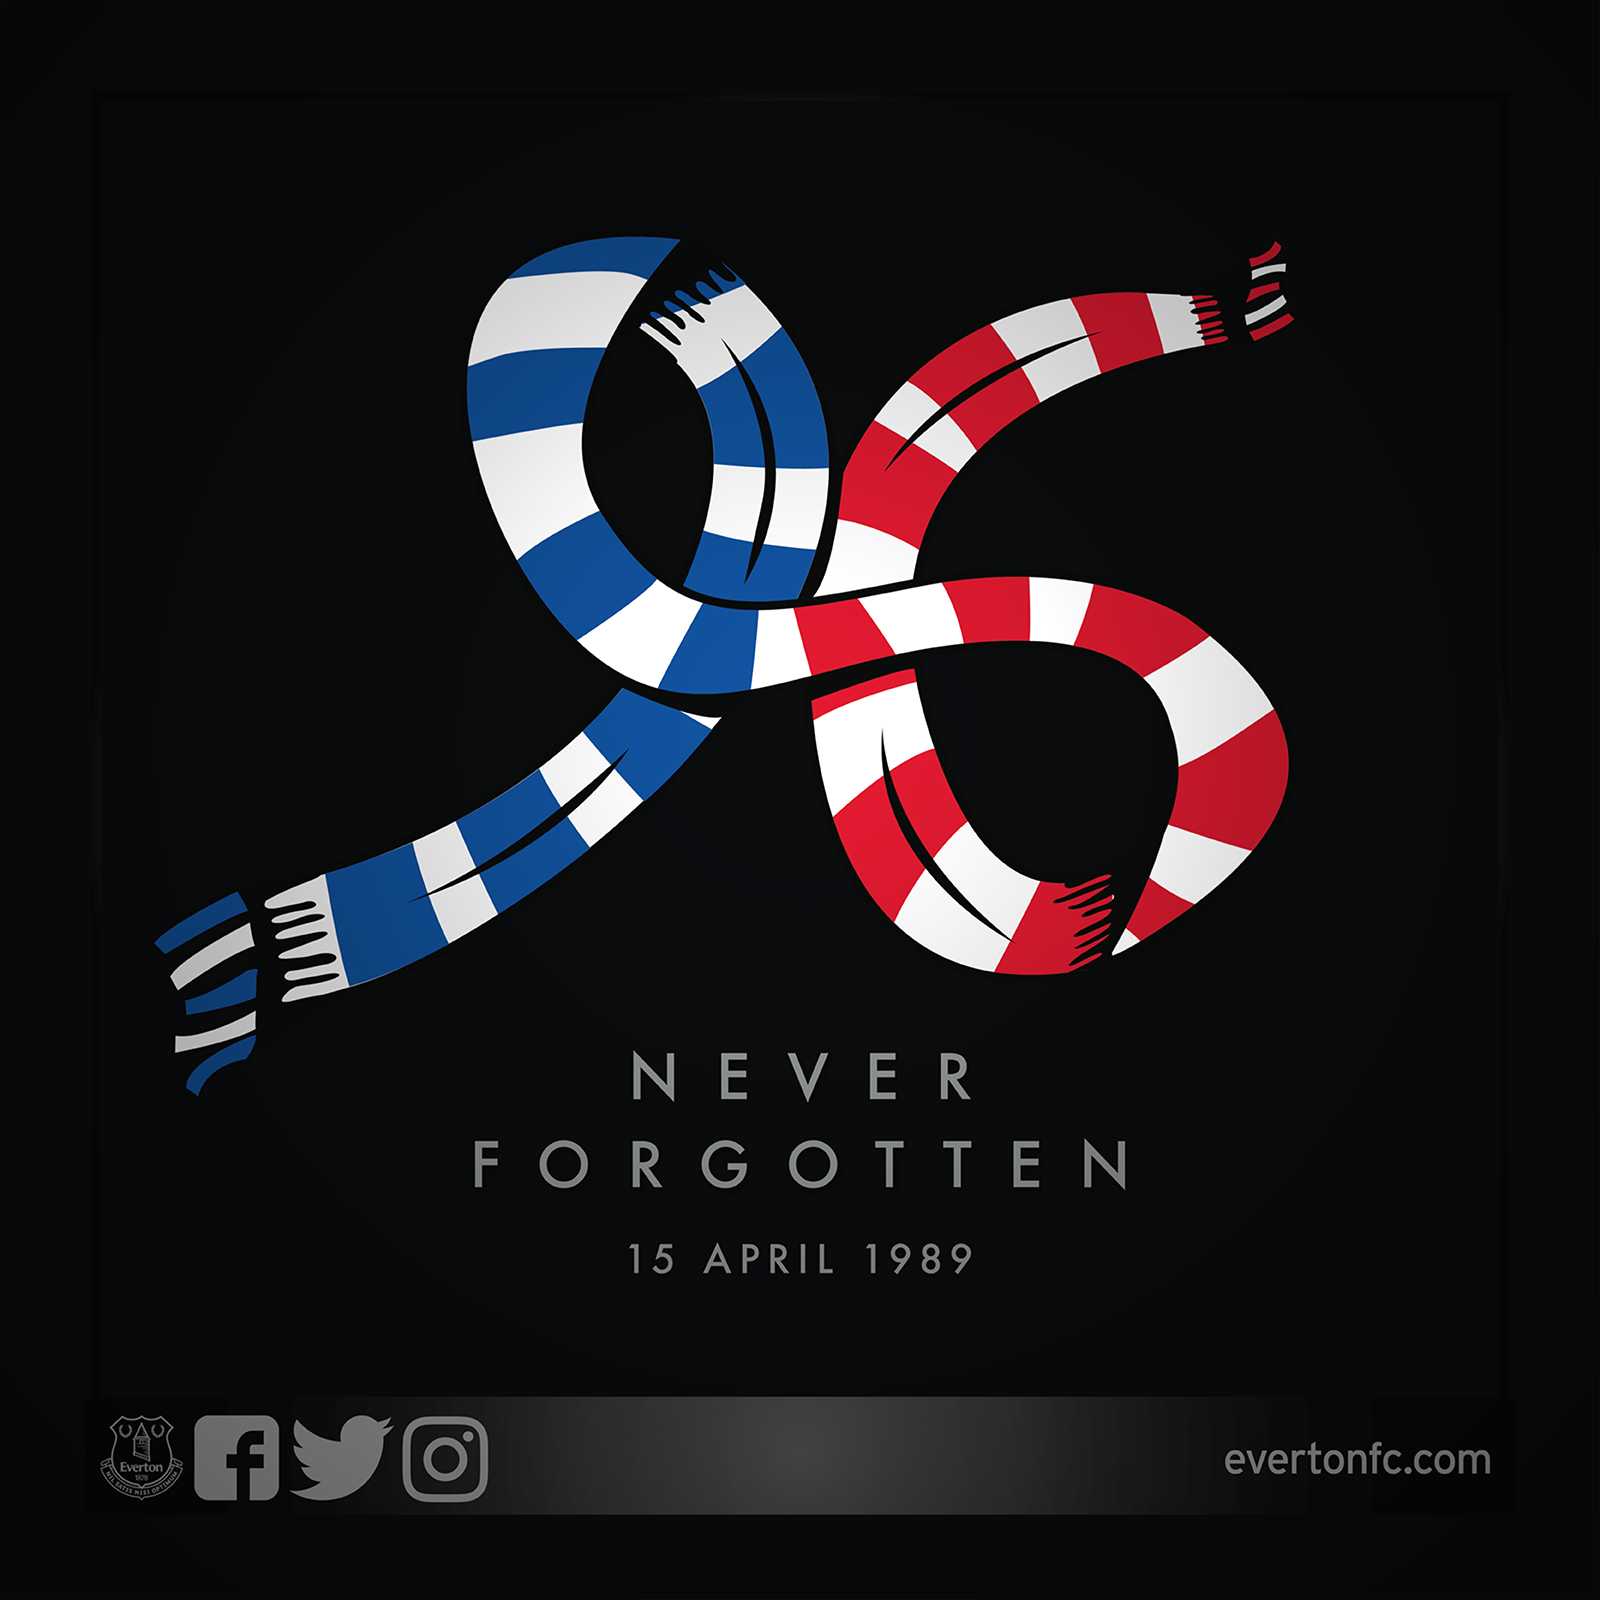 In memory of the 96 supporters who lost their lives in the Hillsborough disaster